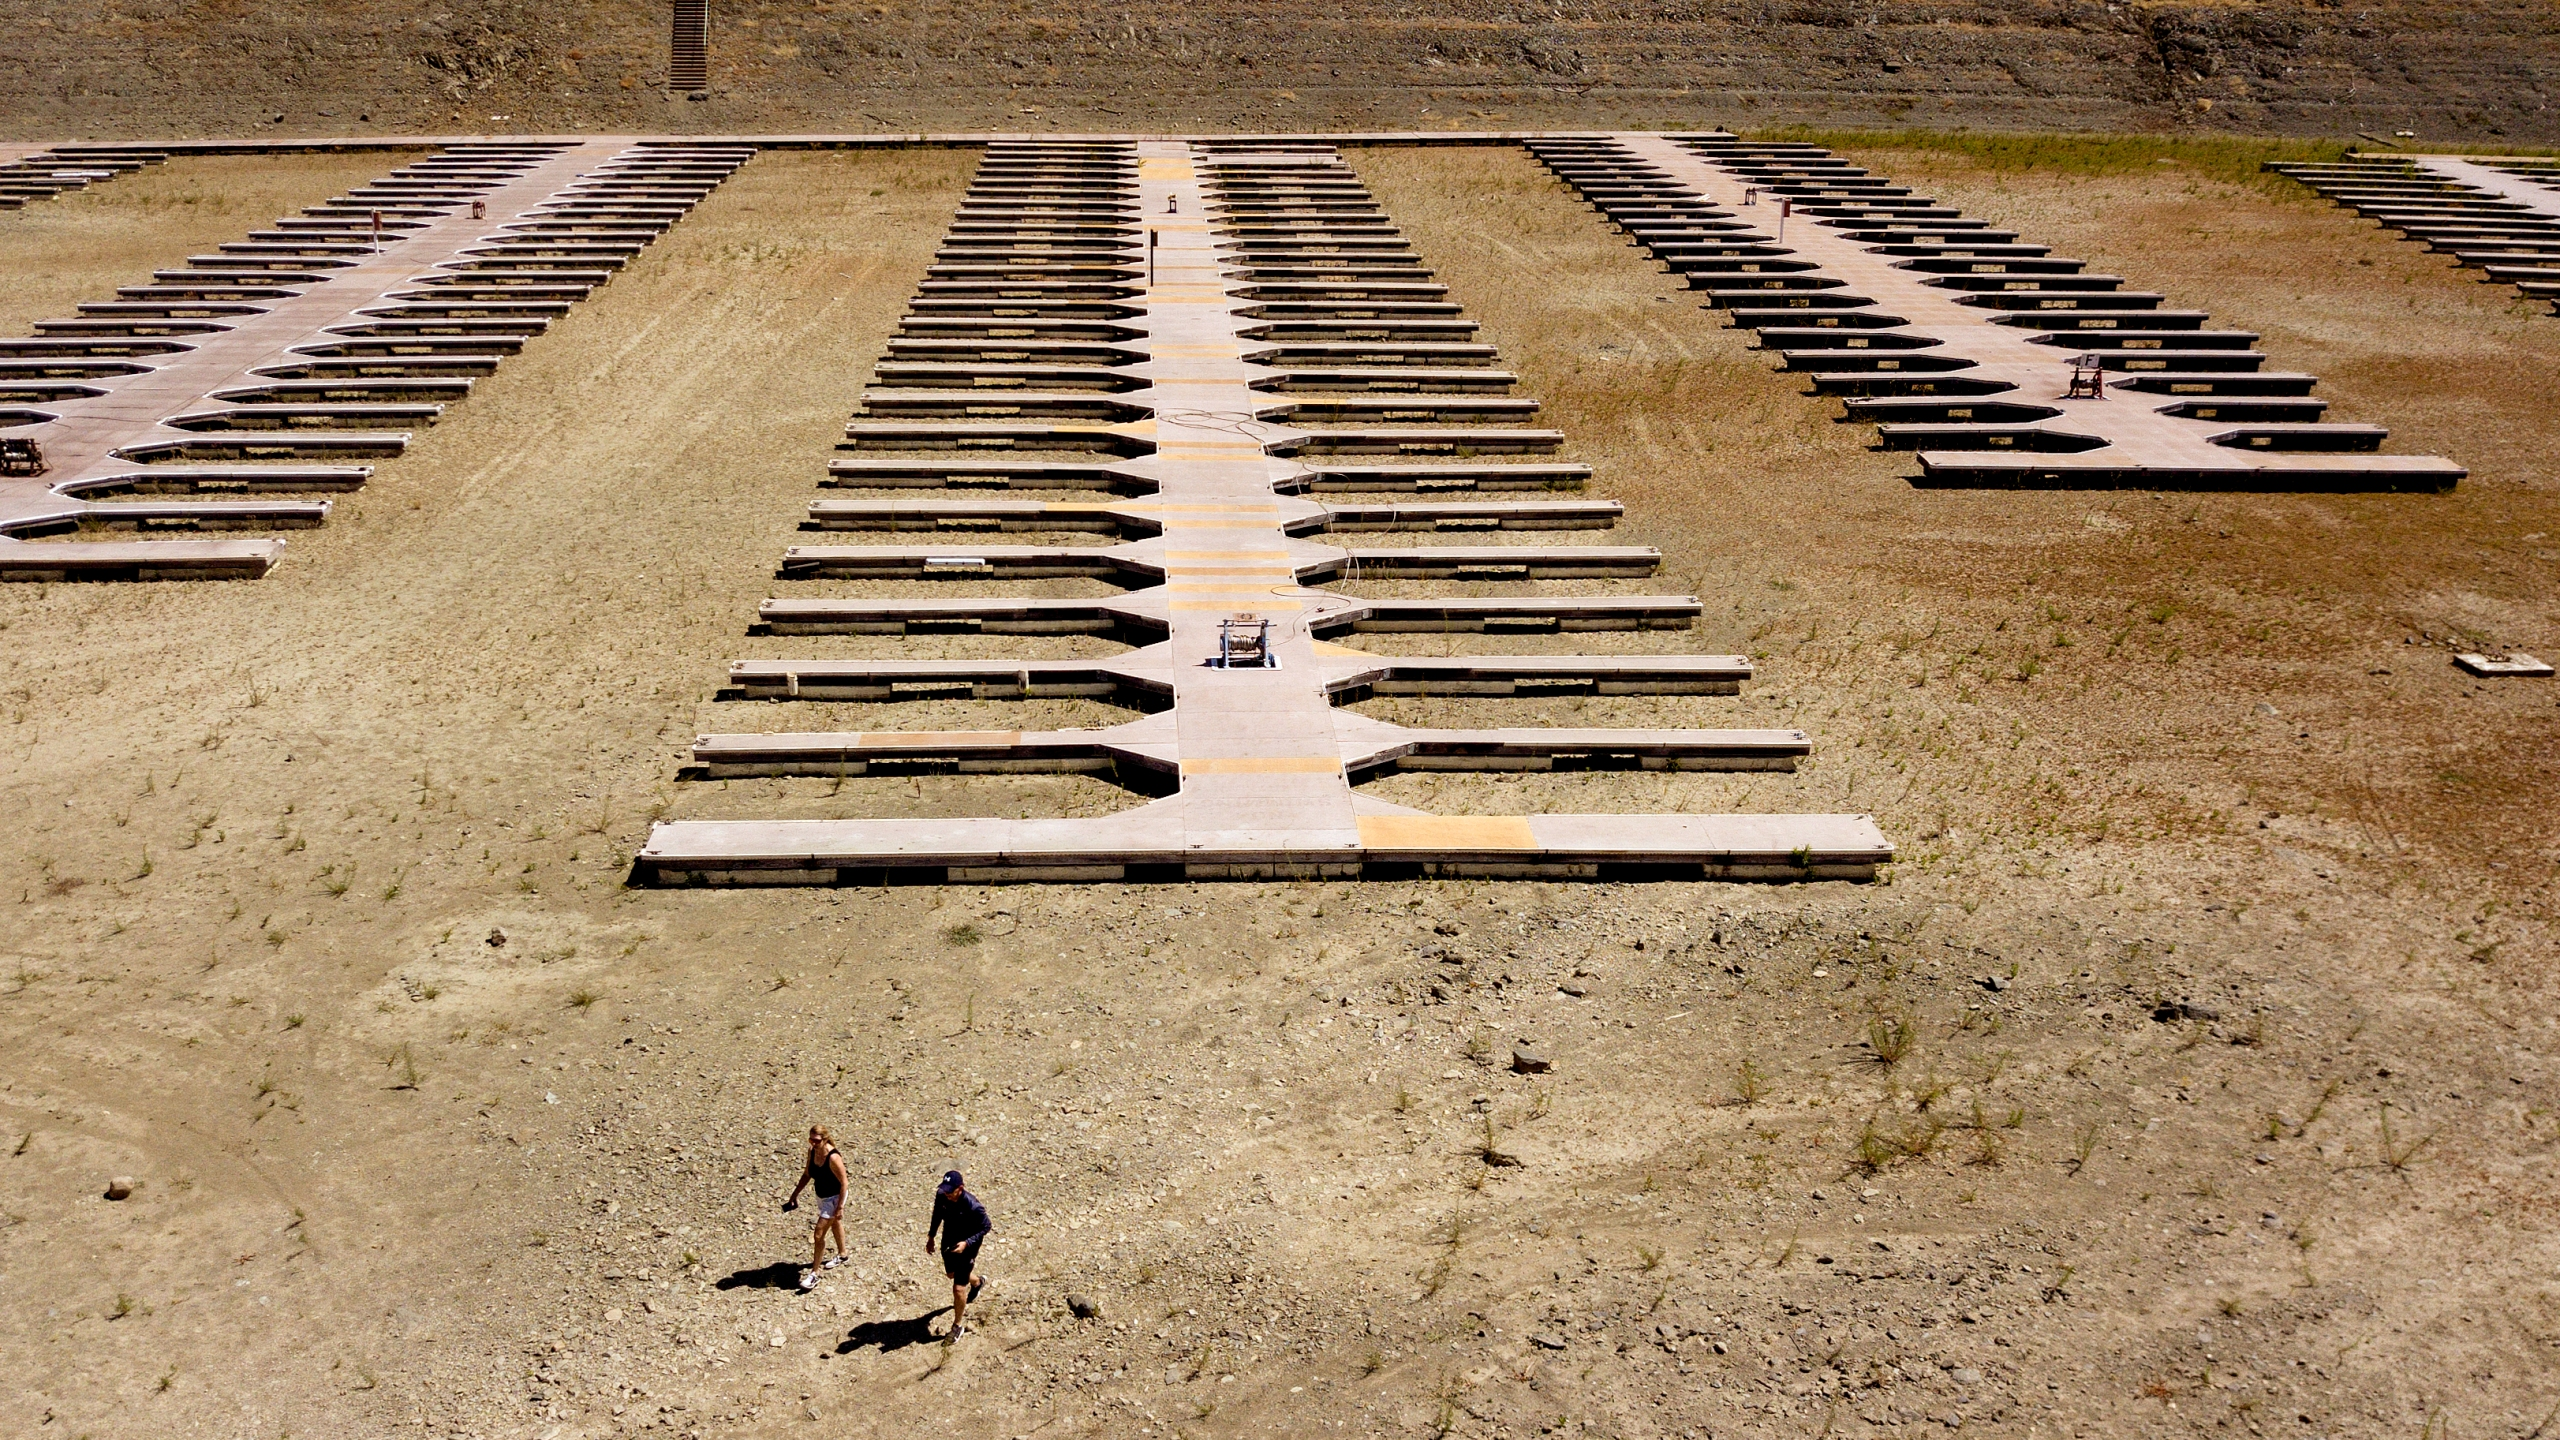 People walk near boat docks as they sit on dry land at the Browns Ravine Cove area of drought-stricken Folsom Lake. (AP Photo/Josh Edelson)